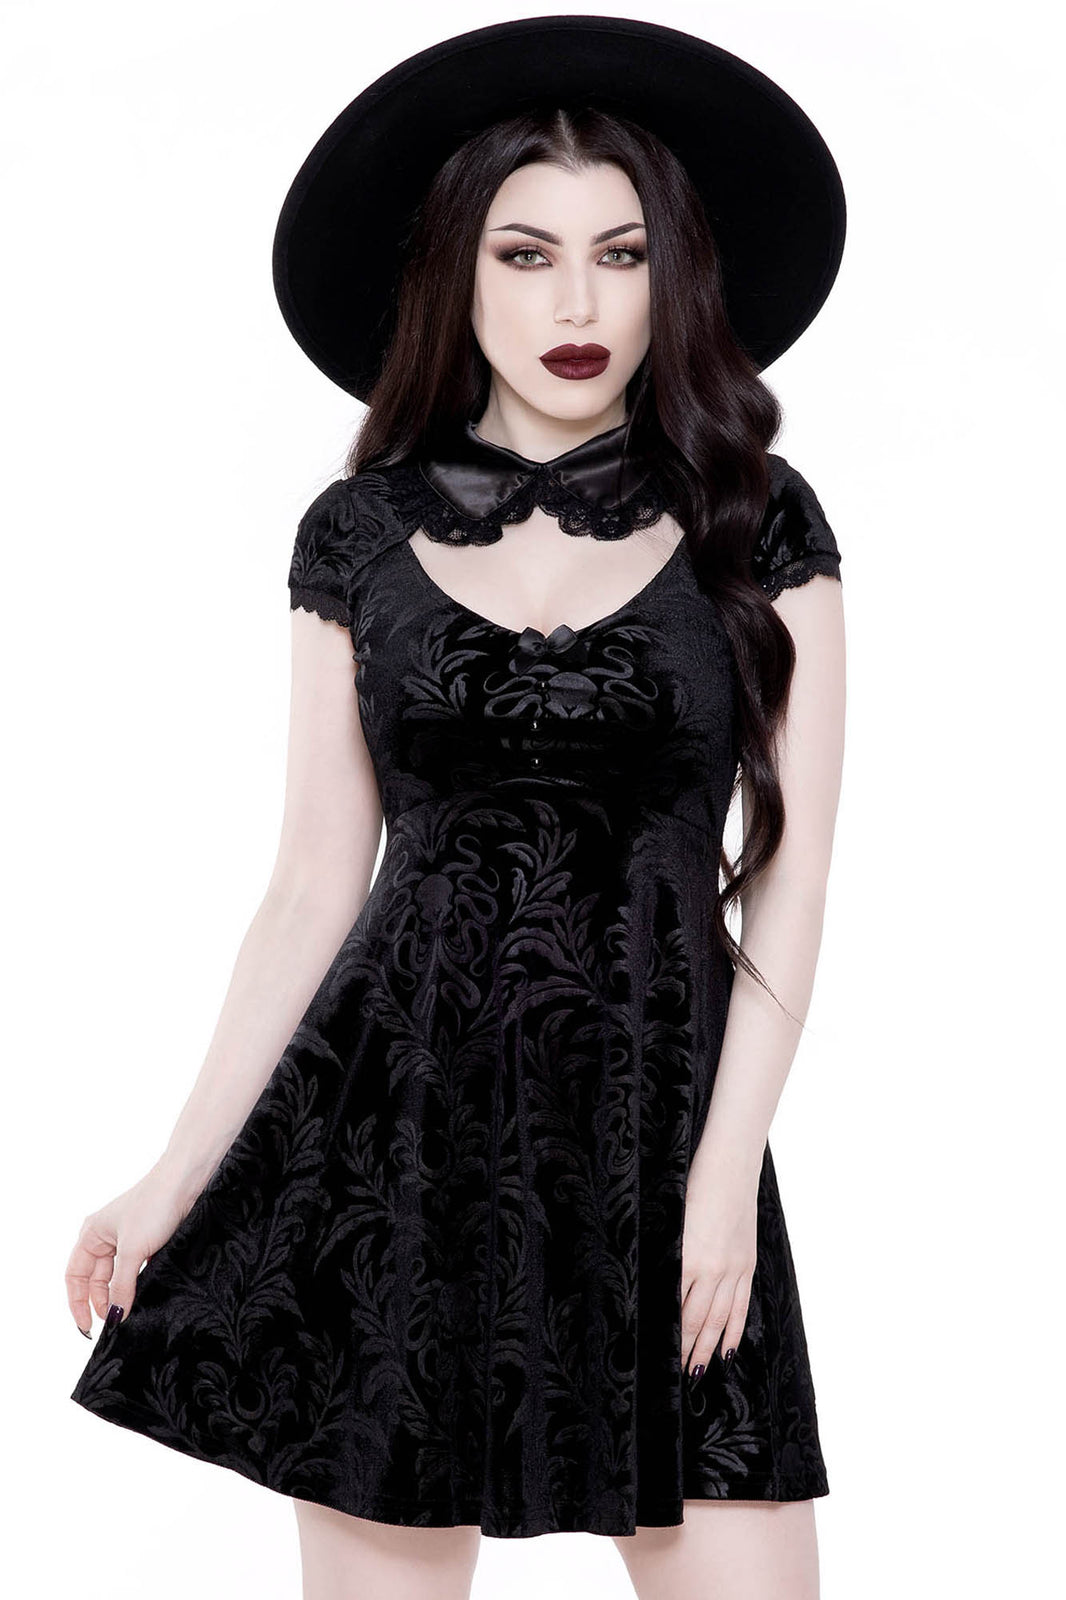 Darkla Skater Dress